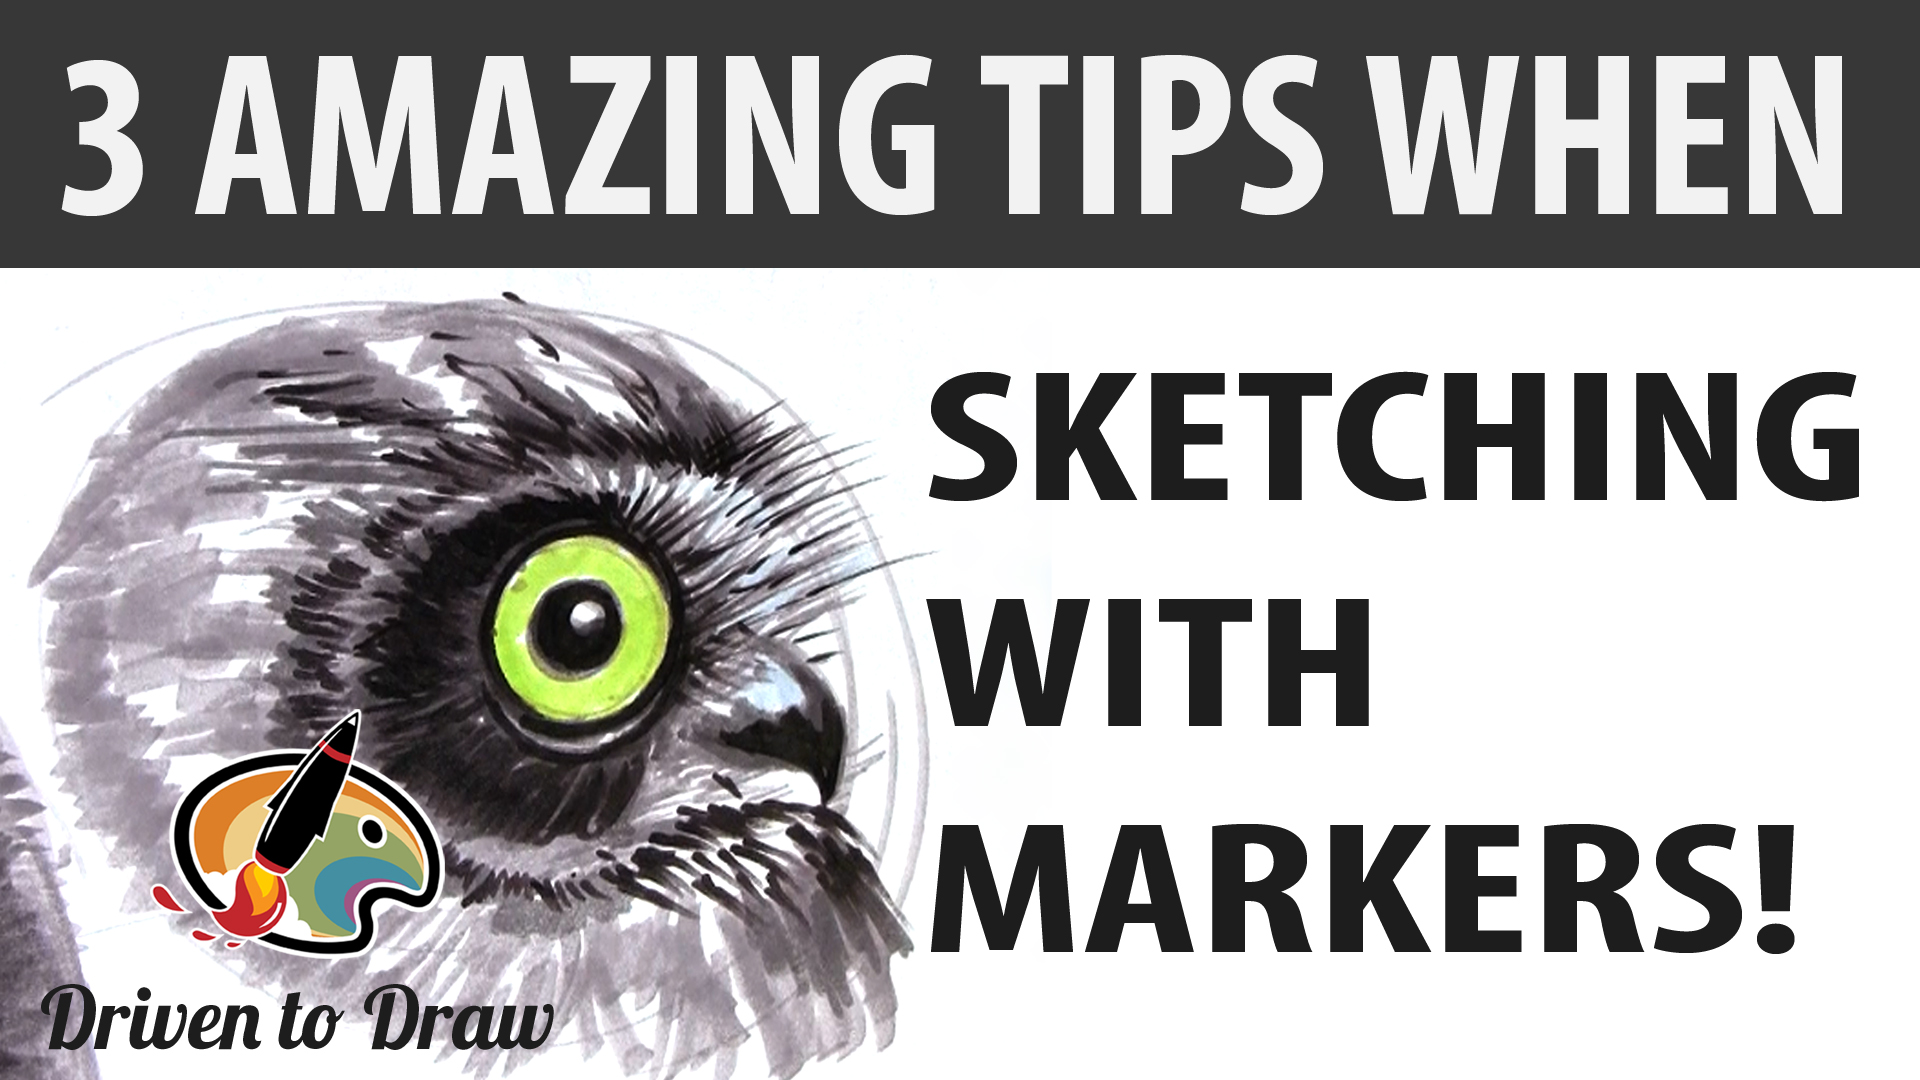 3 AMAZING TIPS WHEN SKETCHING WITH MARKERS post image